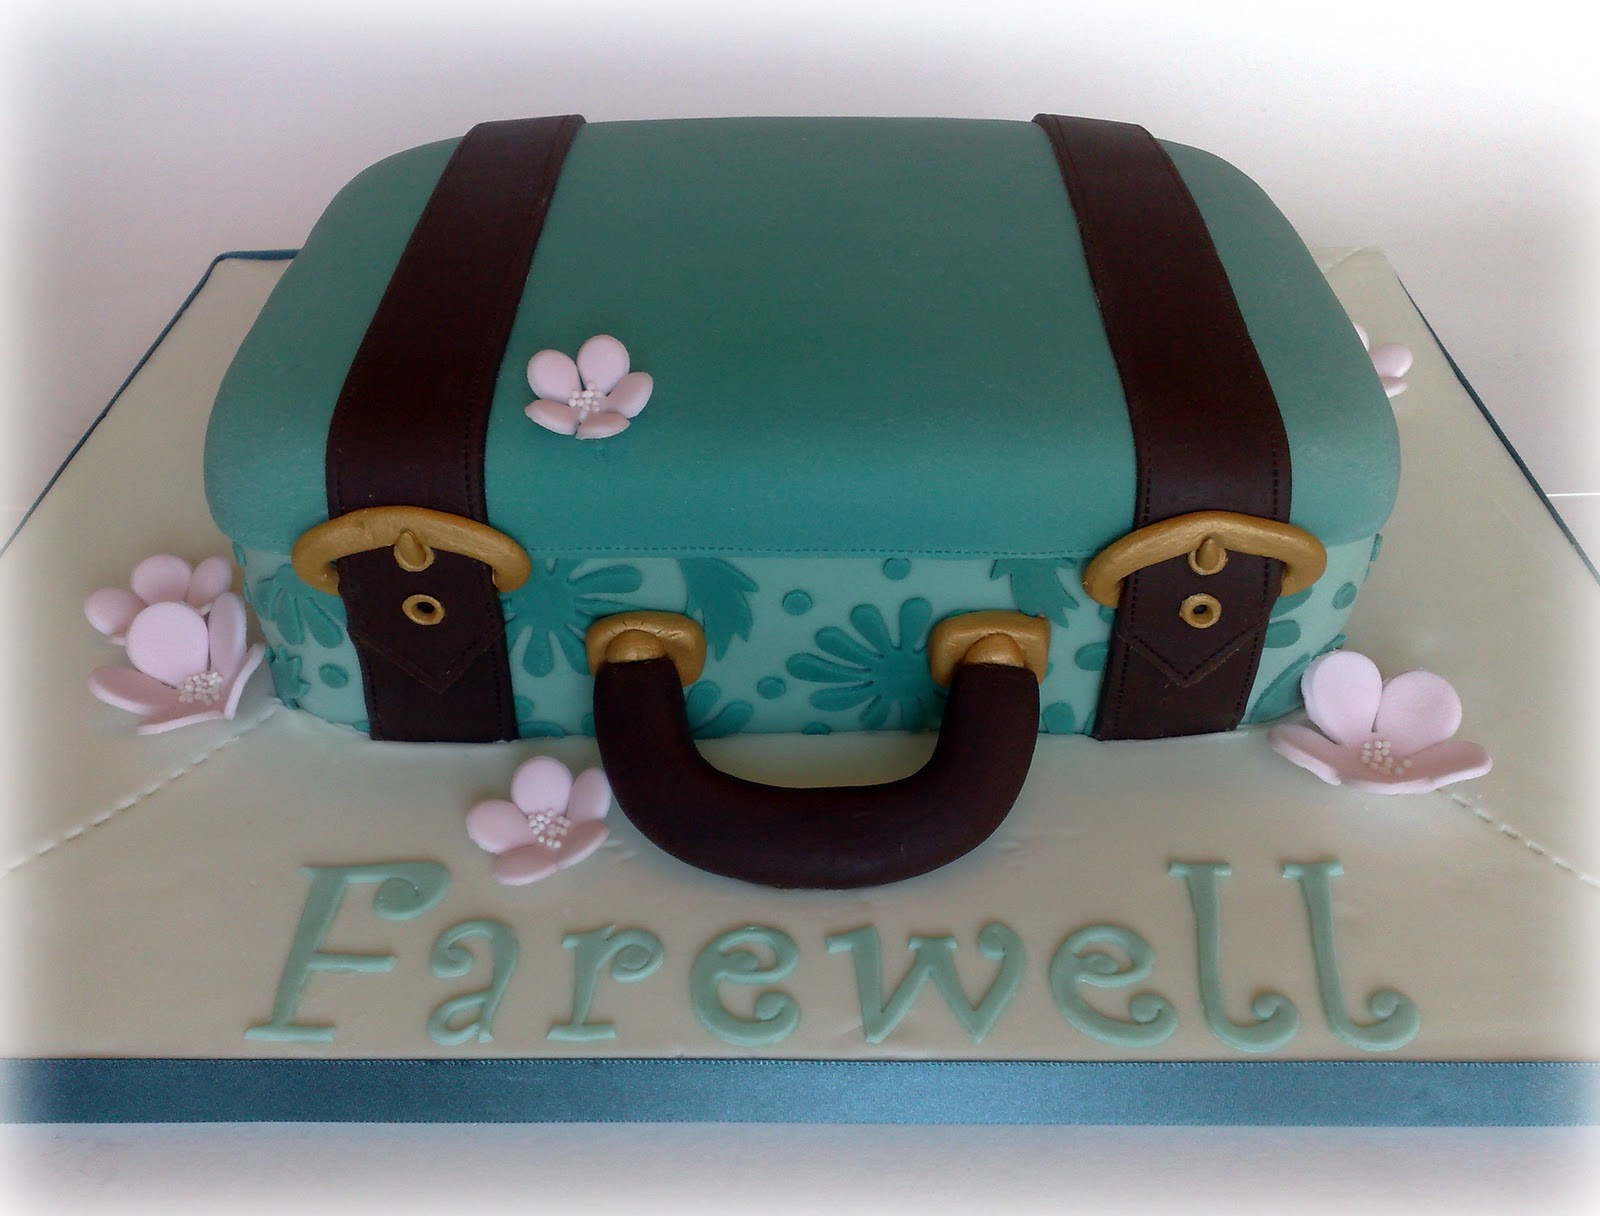 Goodbye Cake Images : Small Things Iced: Farewell Suitcase Cake